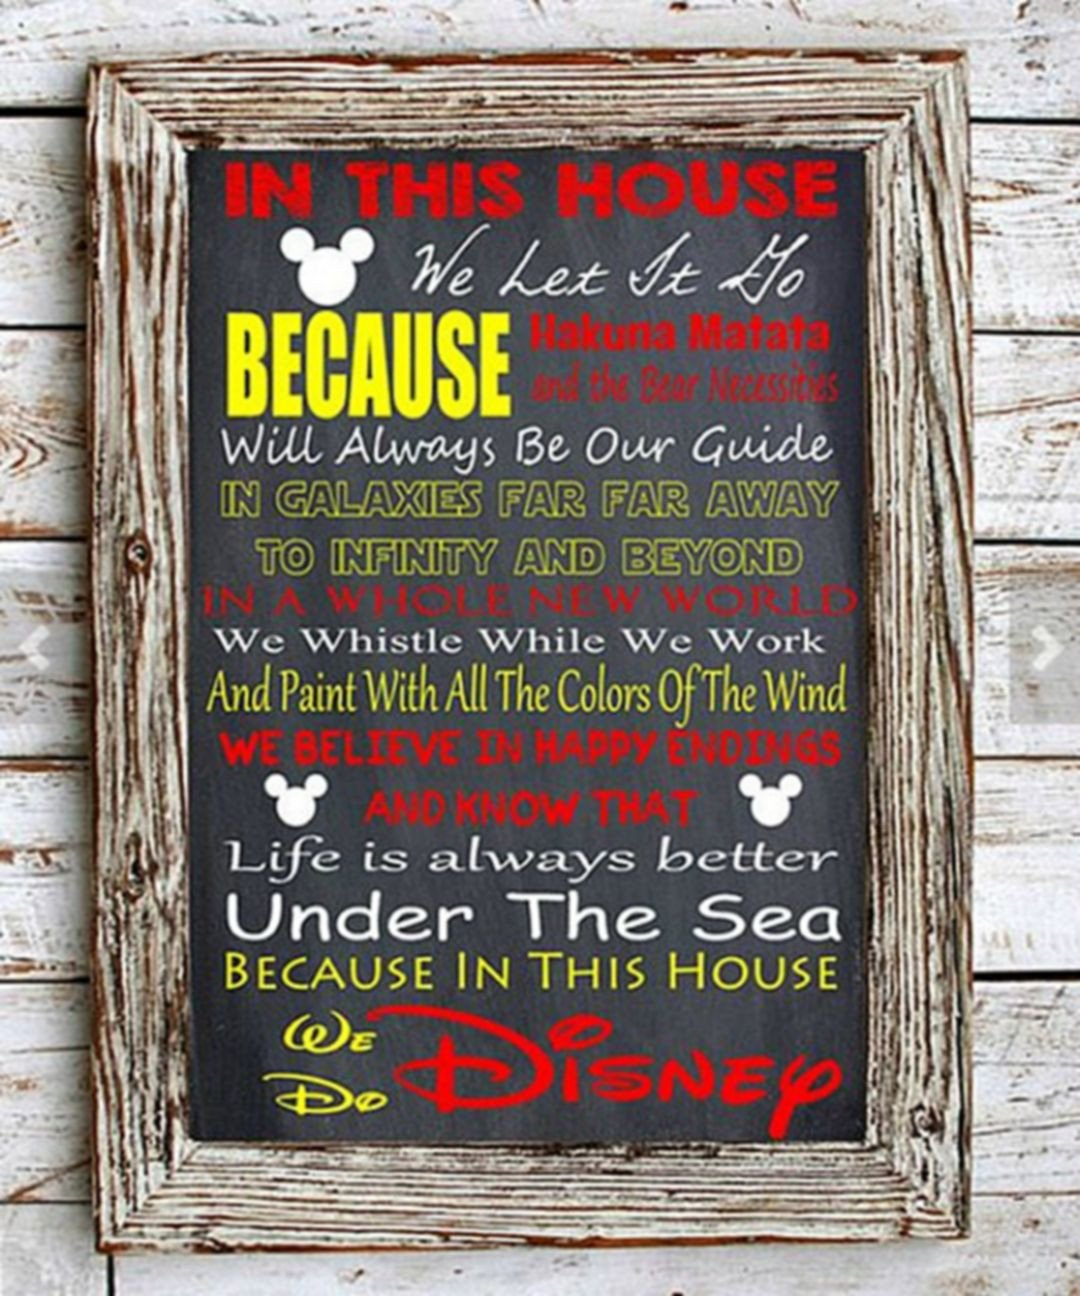 Disney Room Decor for Adults Awesome Disney Home Decor for Adults – Homely